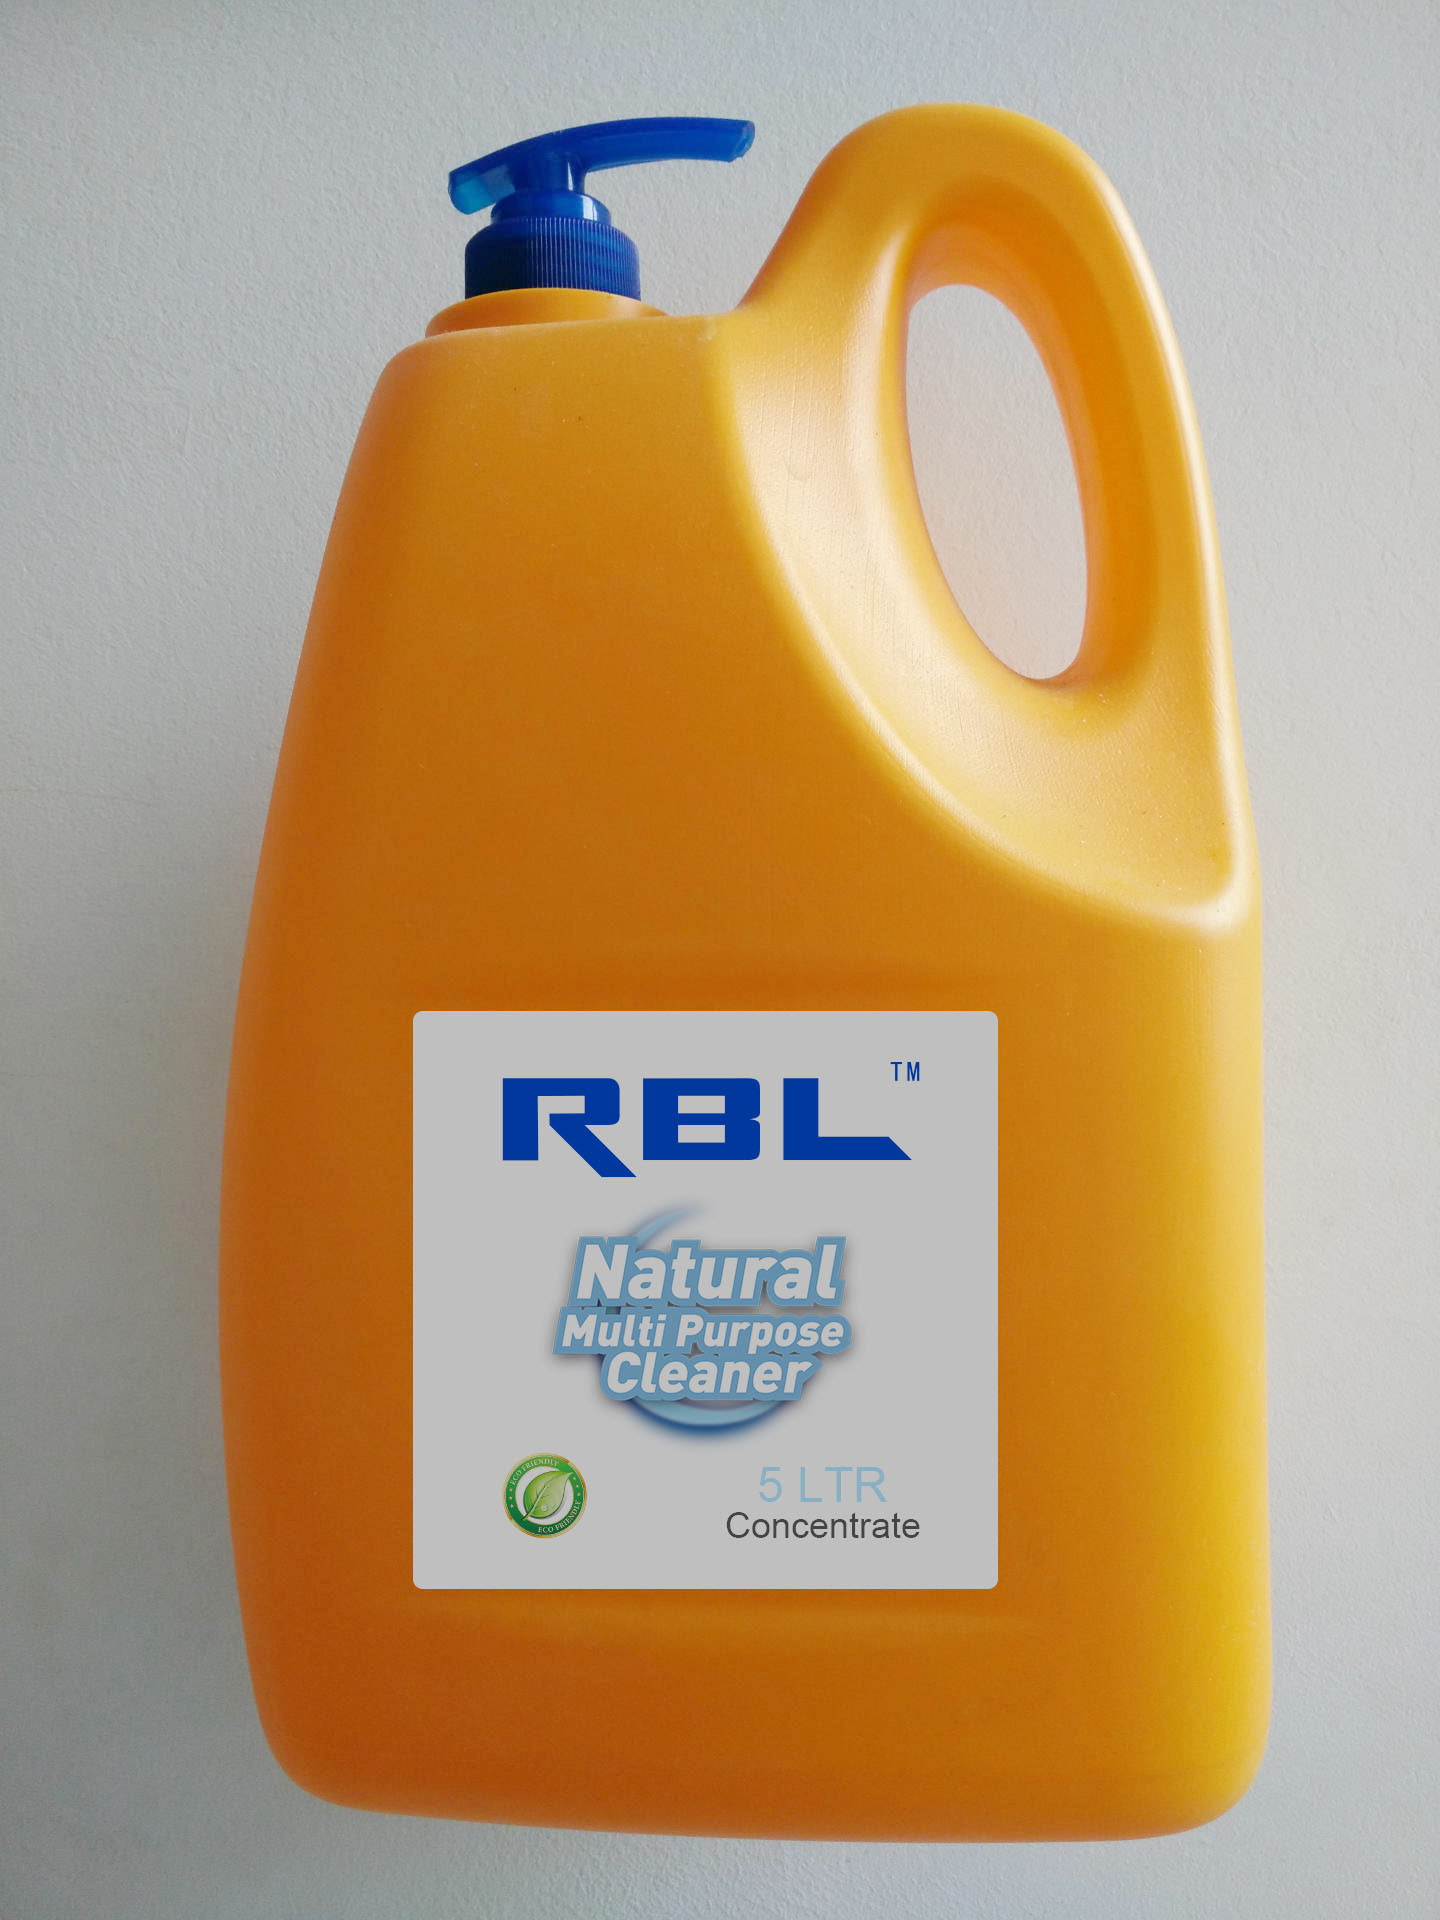 Rbl Natural Multi Purpose Cleaner 5lconcentrated Liquid Detergent Bio-Degreaser